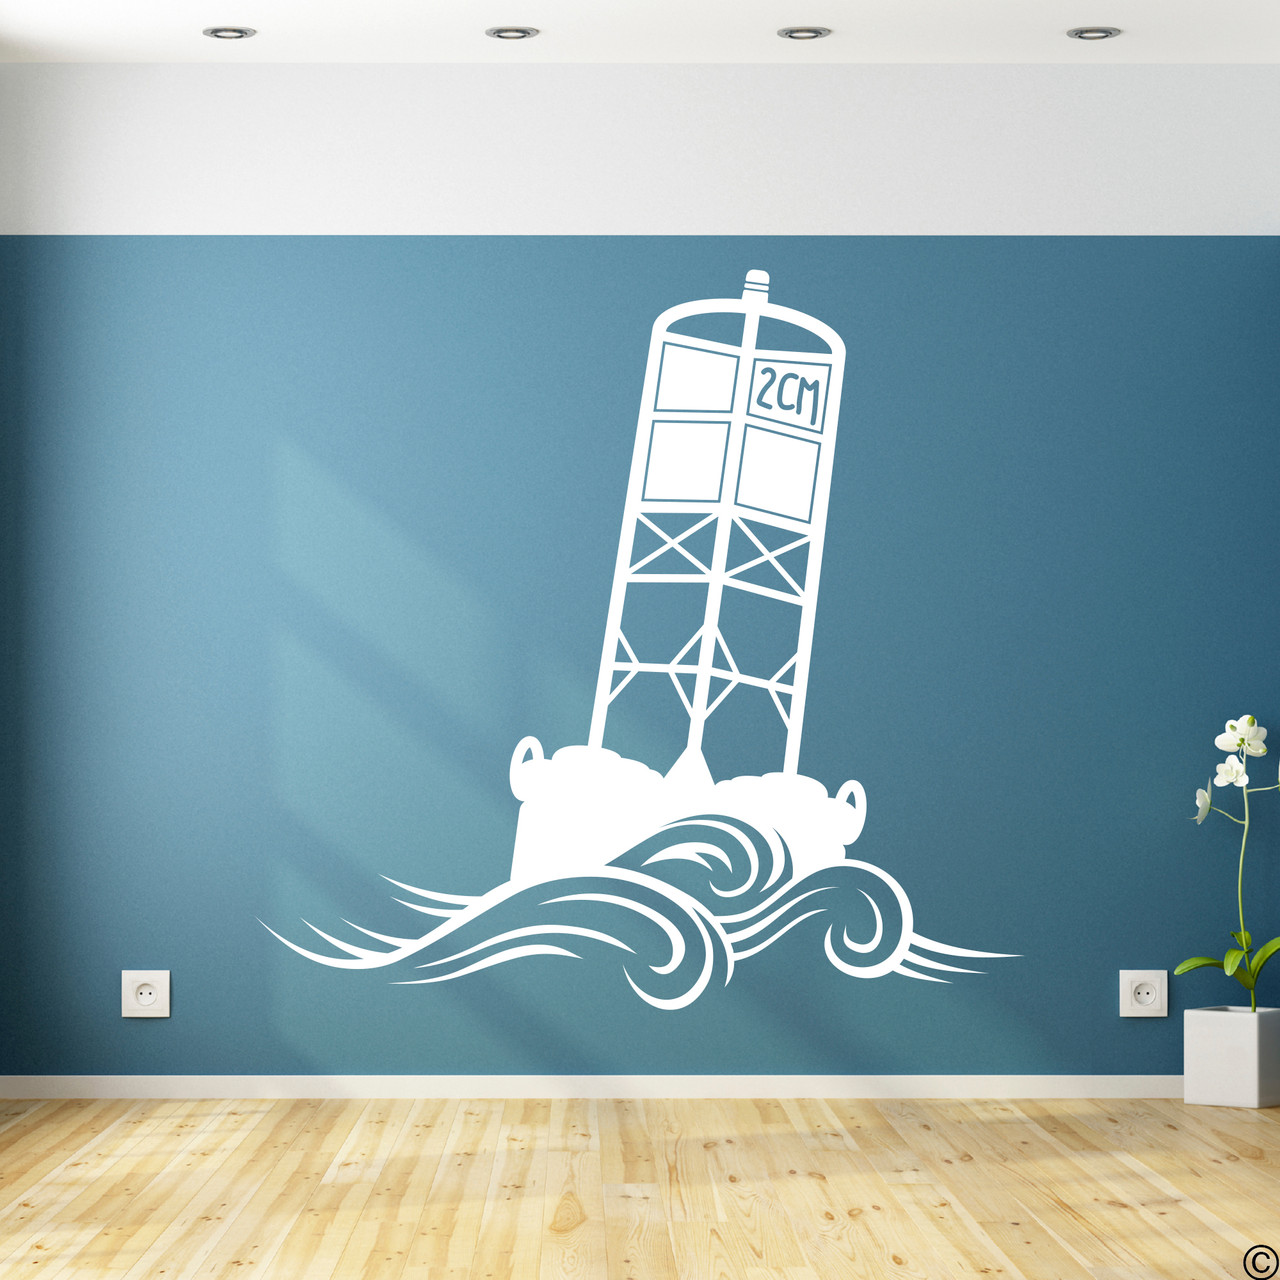 The Cape May Harbor 2CM Buoy wall decal in white.